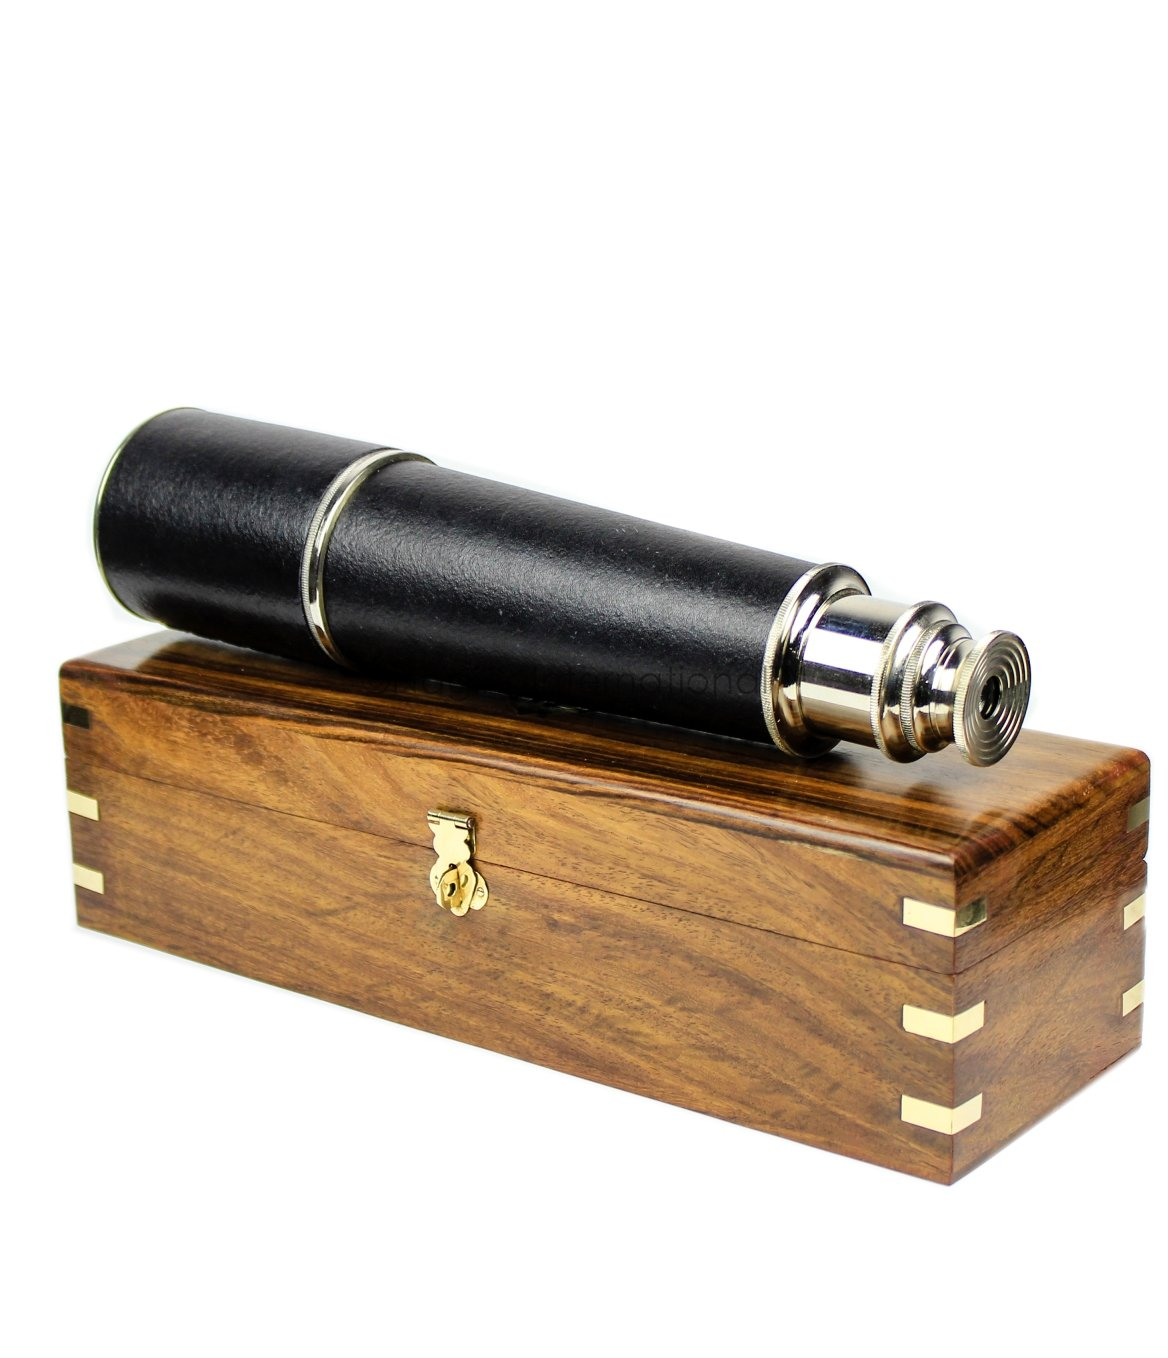 Nagina International Nautical Pirate's Maritime 32'' Large Spyglass with Beautiful Brass Decorative Anchor Emblem Rosewood Hand Crafted Wooden Box | Antique Ship's Replicas (Chromed with Box)